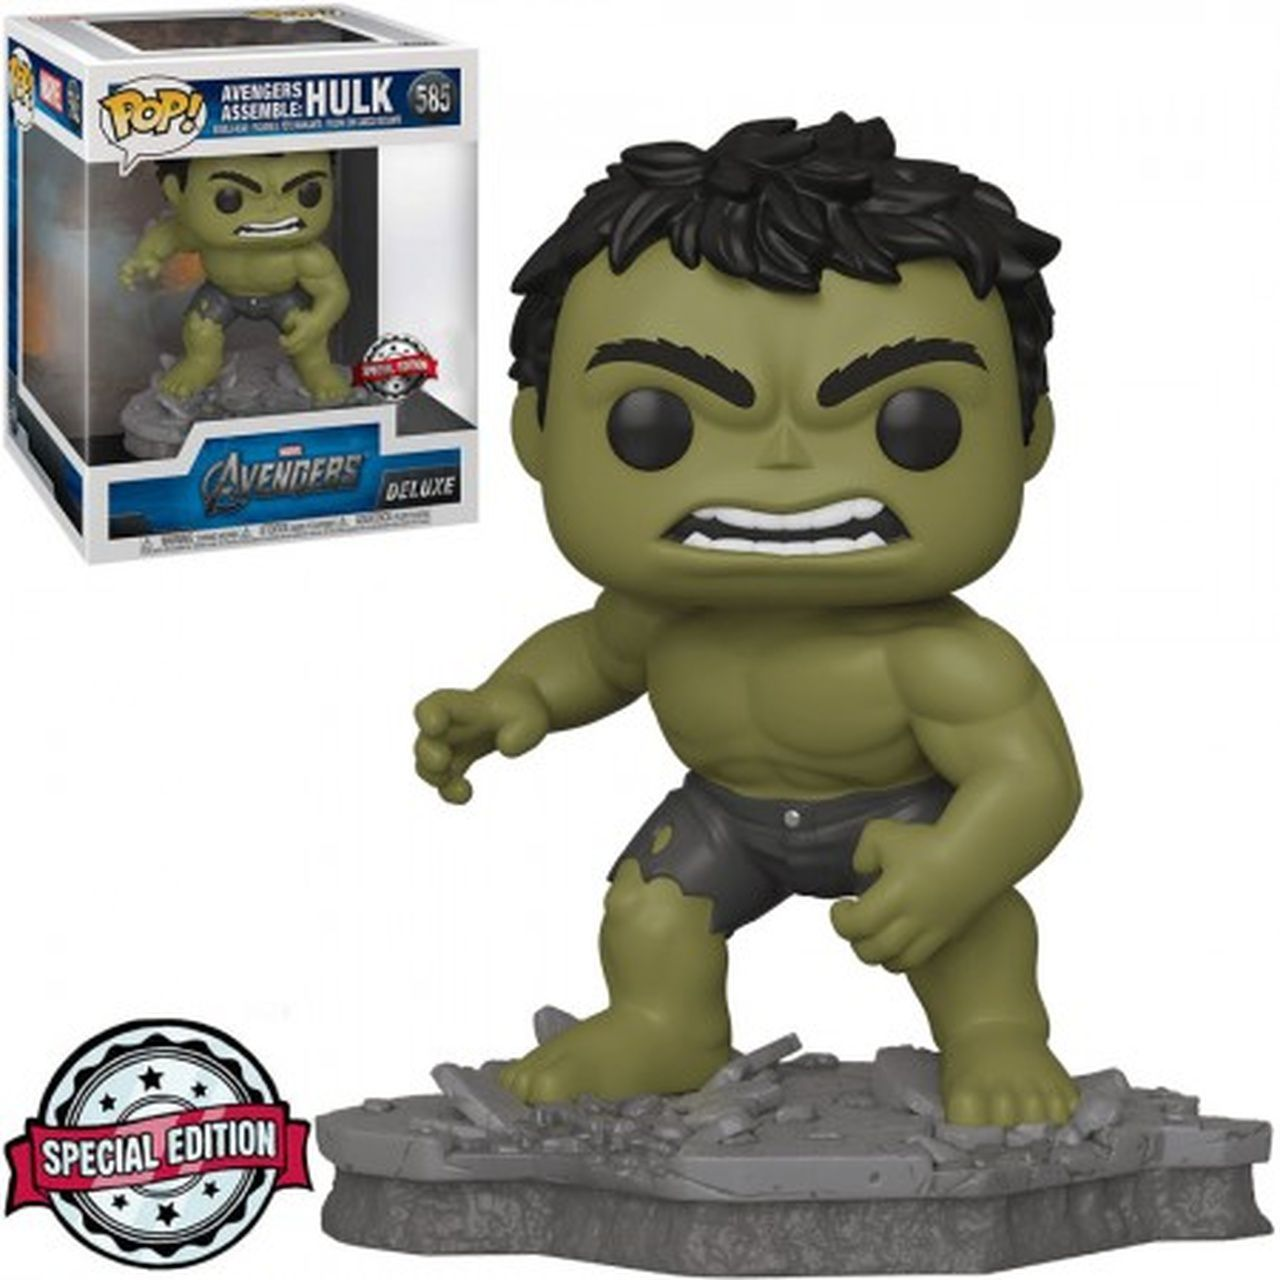 Funko Pop! Hulk: Os Vingadores (The Avengers) Avengers Assemble Series (Exclusivo) #585 - Funko